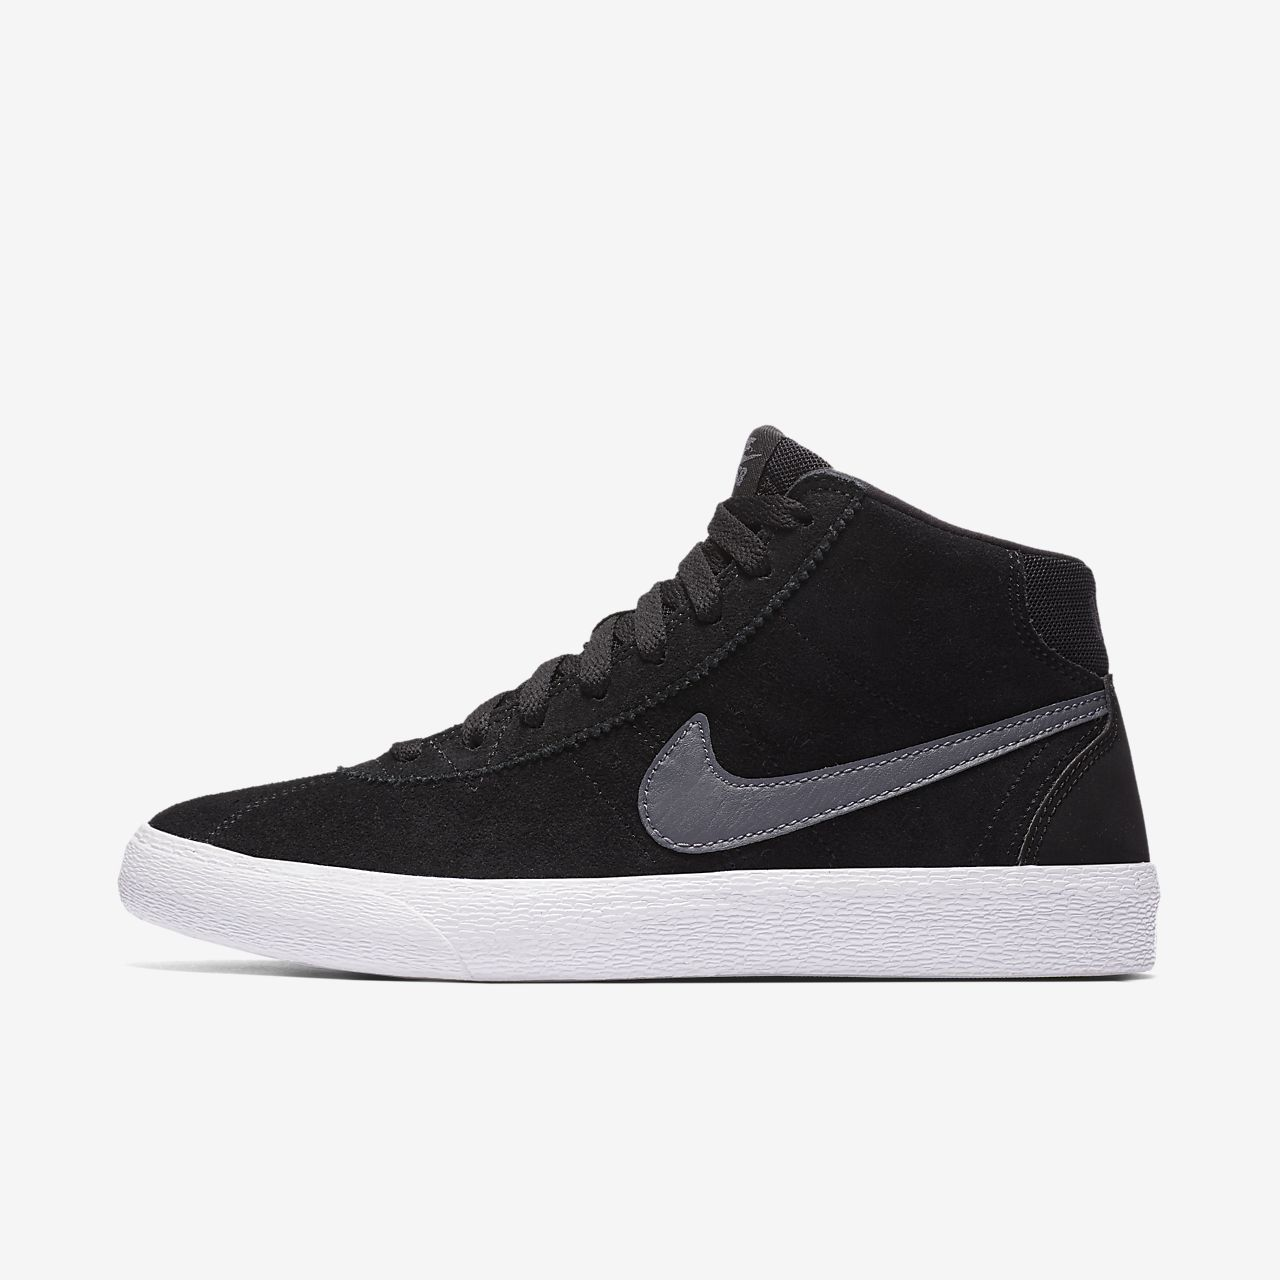 cheap for discount 4b8a9 35f3a ... Nike SB Bruin High Womens Skateboarding Shoe